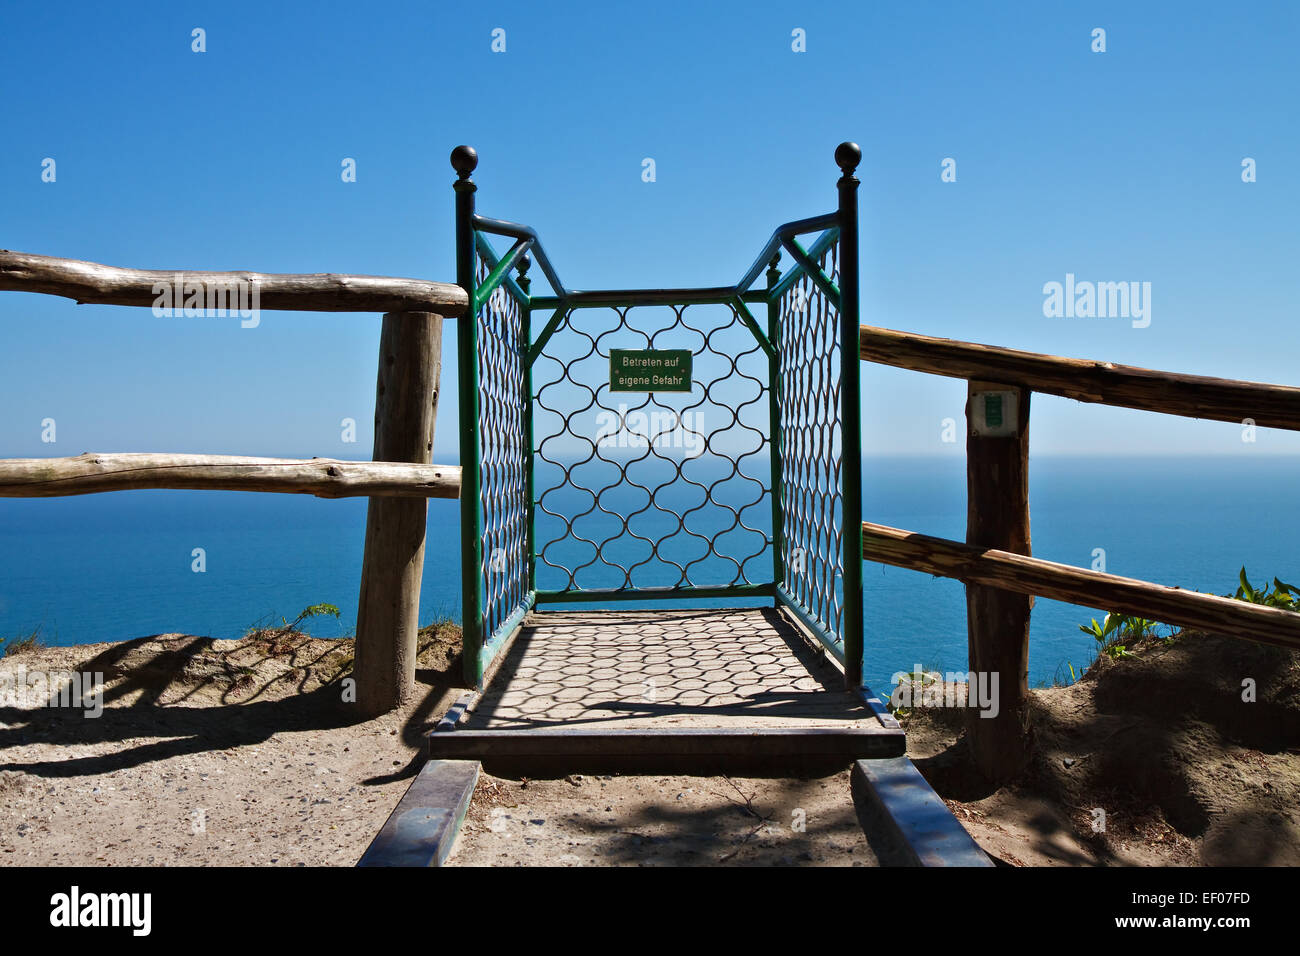 Victoria observation deck view of complaints. - Stock Image